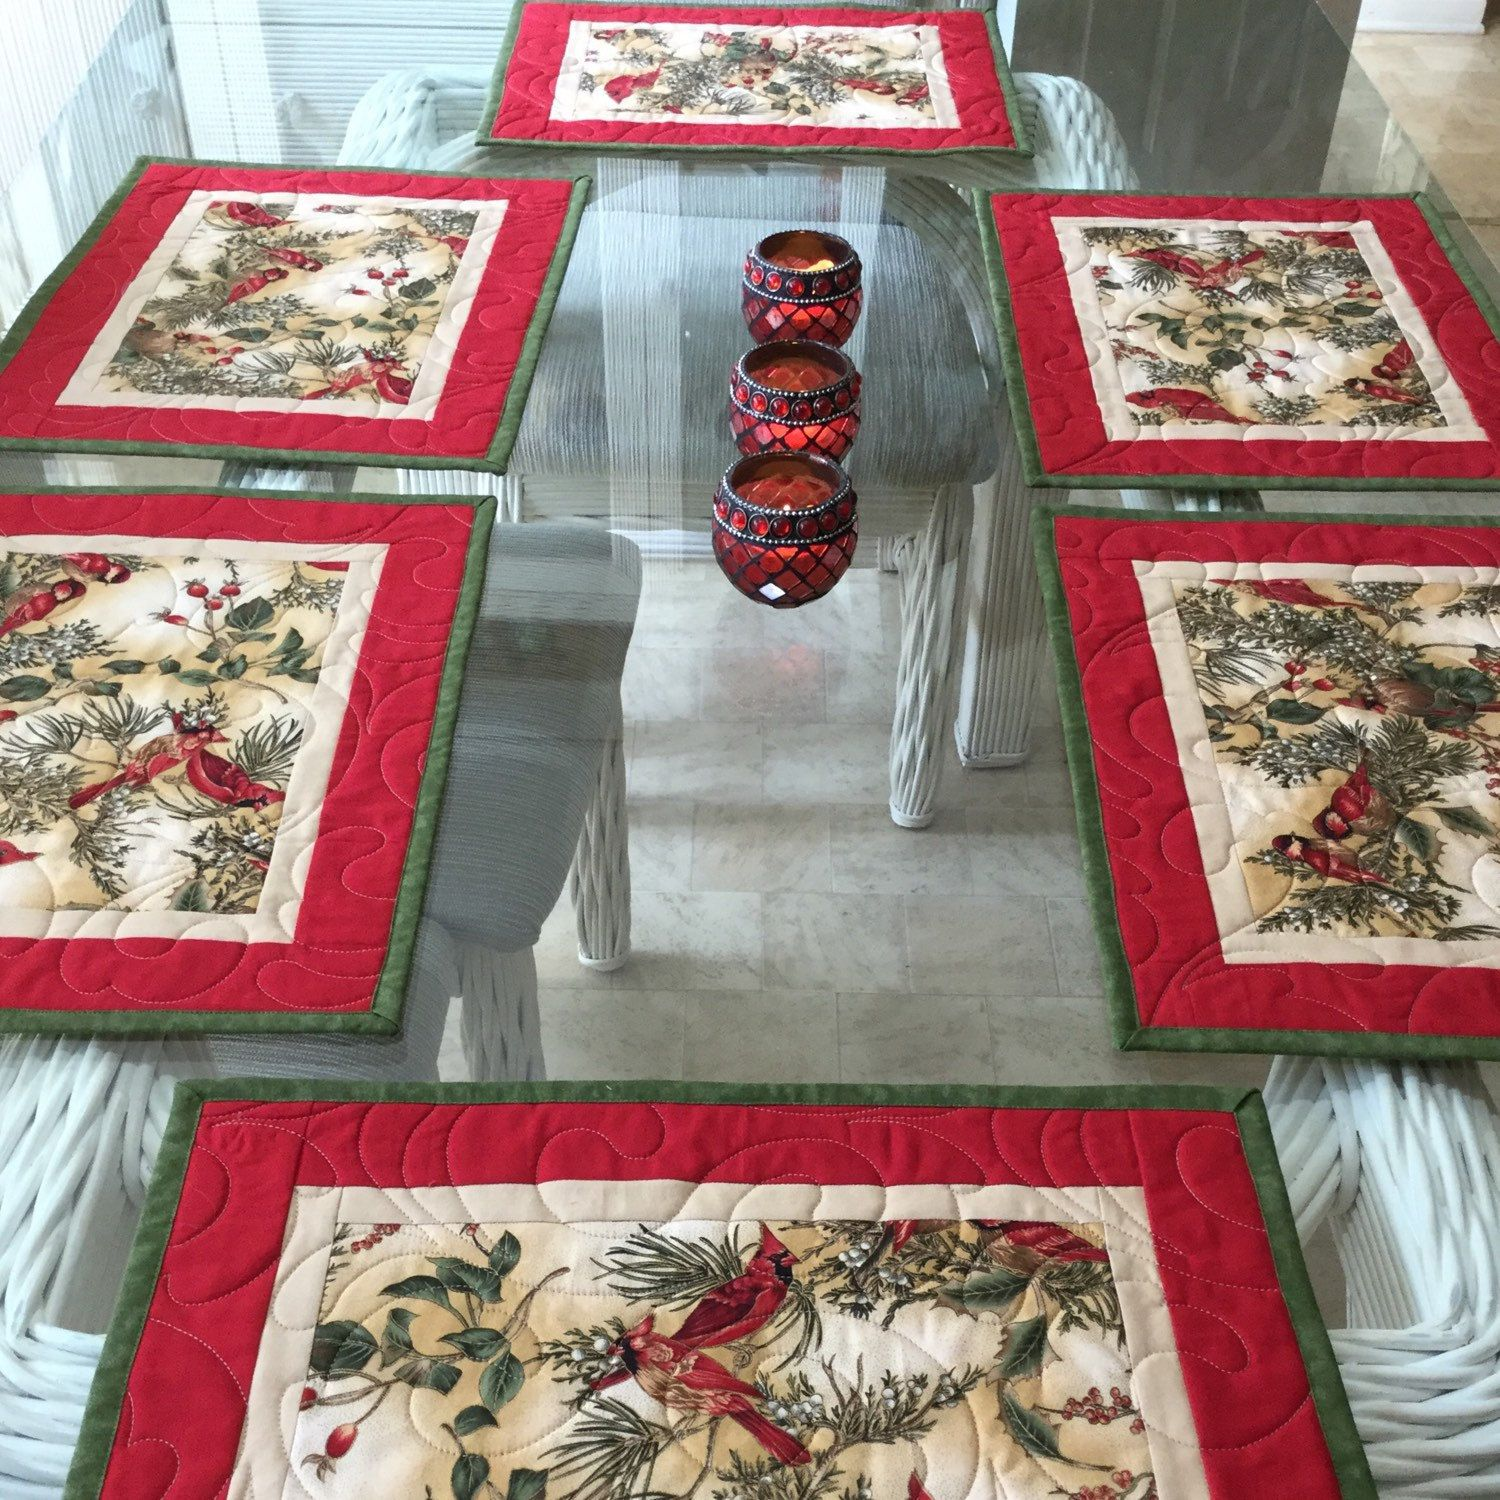 Christmas Placemats Quilted Placemats Poinsettia Placemats Etsy Christmas Placemats Place Mats Quilted Table Runner And Placemats